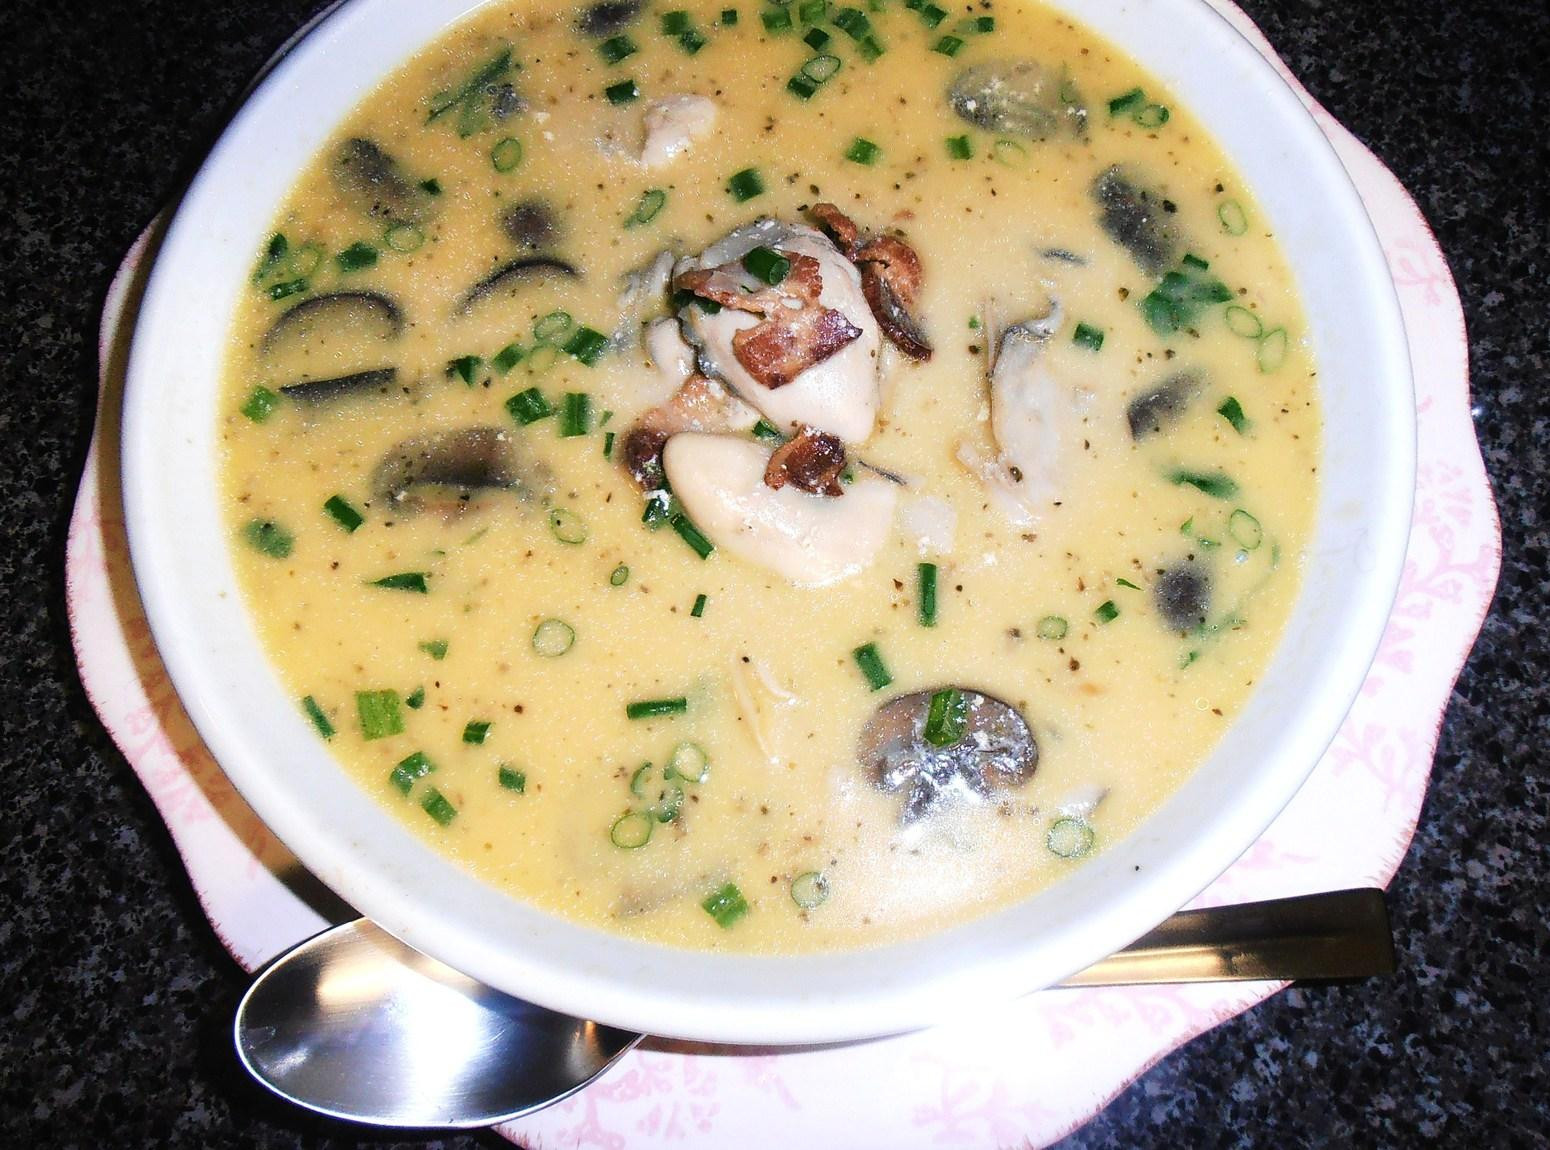 Oyster Stew Recipes  Oh So Good Oyster Bacon & Mushroom Stew Recipe